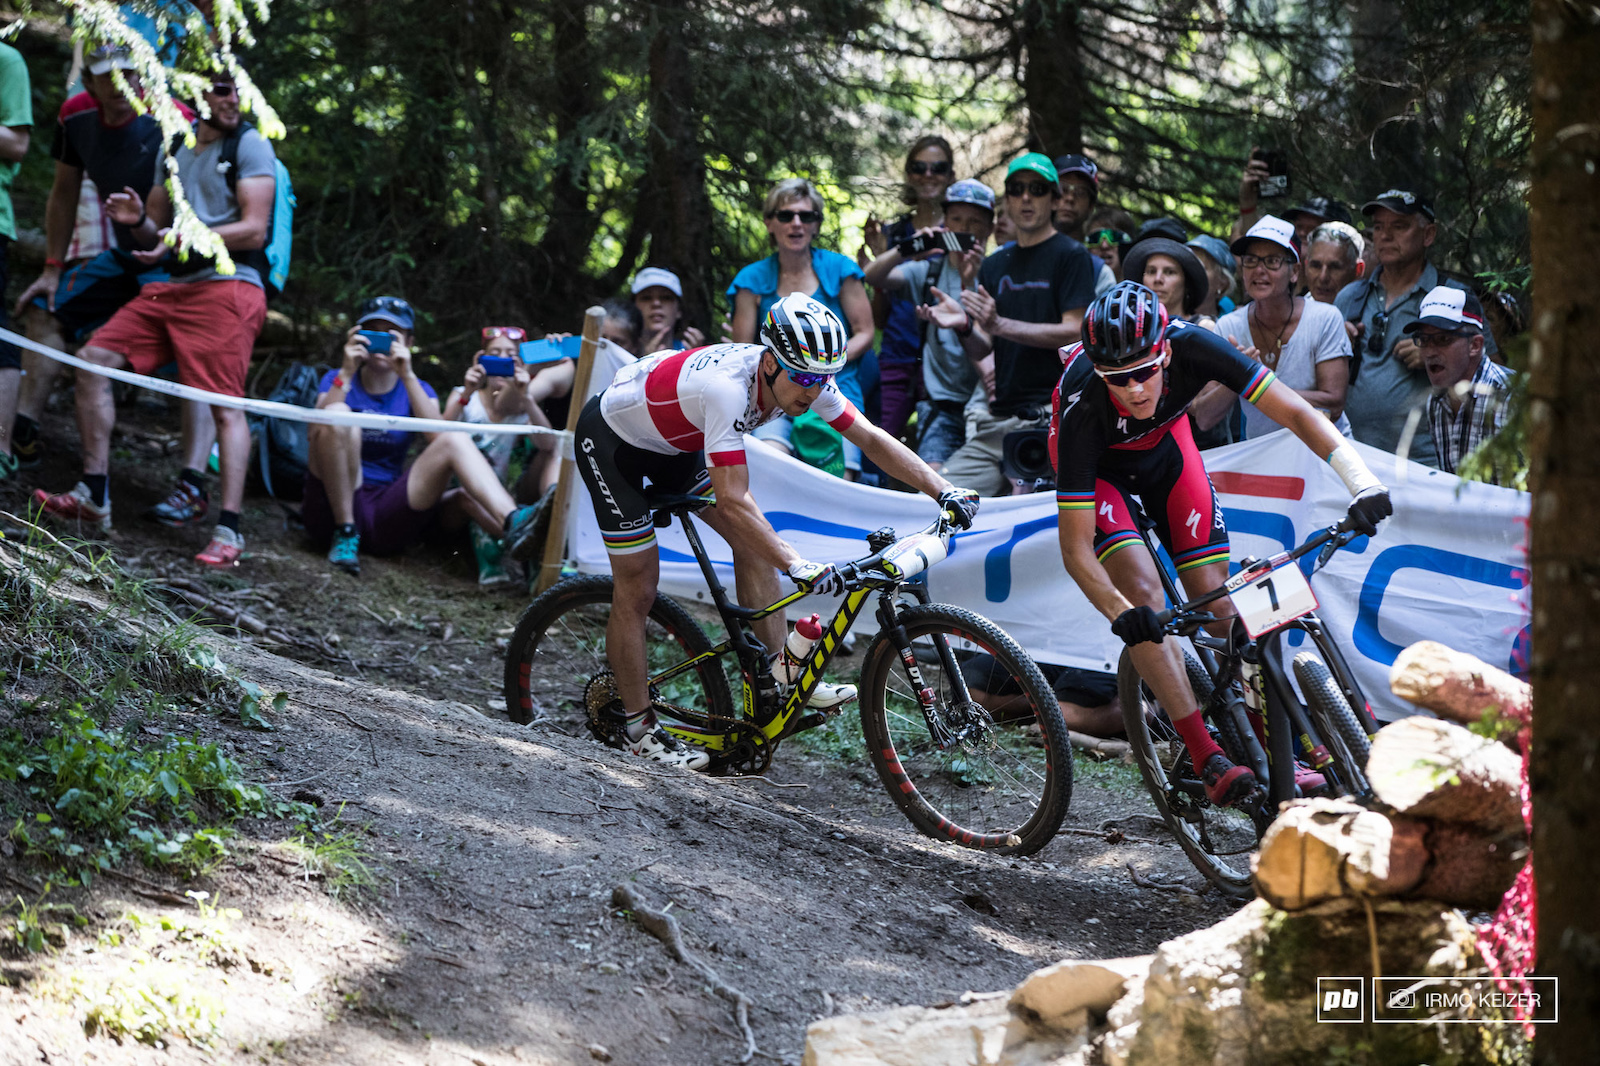 Jaroslav Kulhavy was out for revenge as Nino Schurter bested him before his home crowd a week earlier.